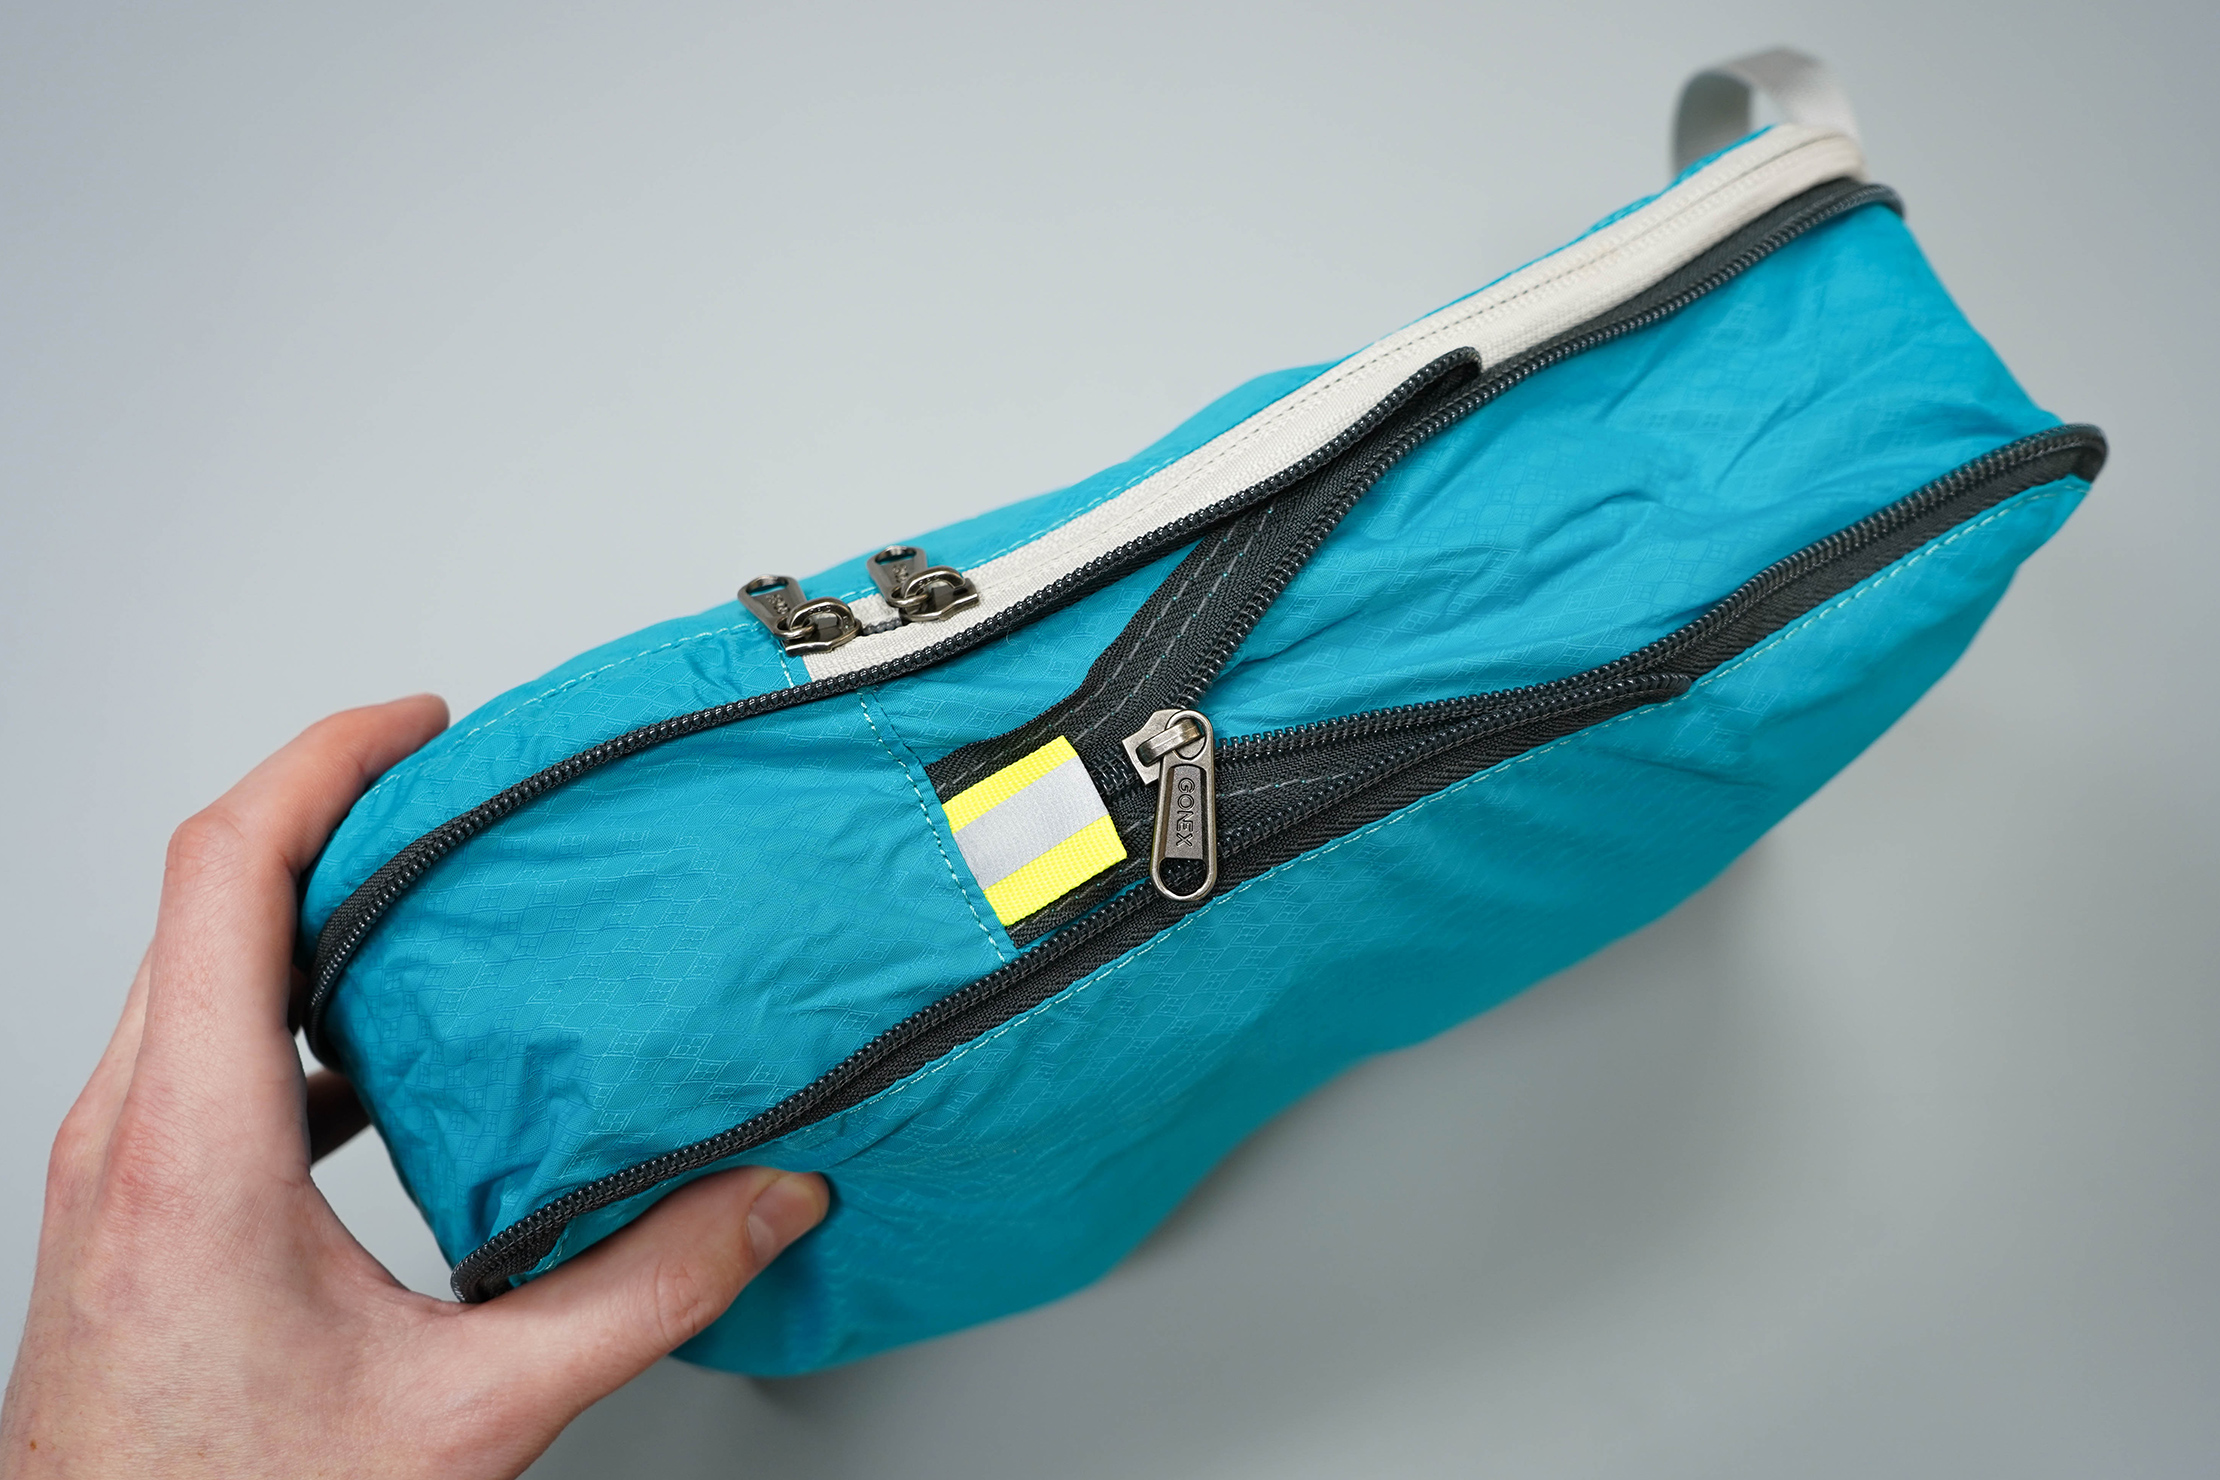 Gonex Compression Packing Cubes Expanded